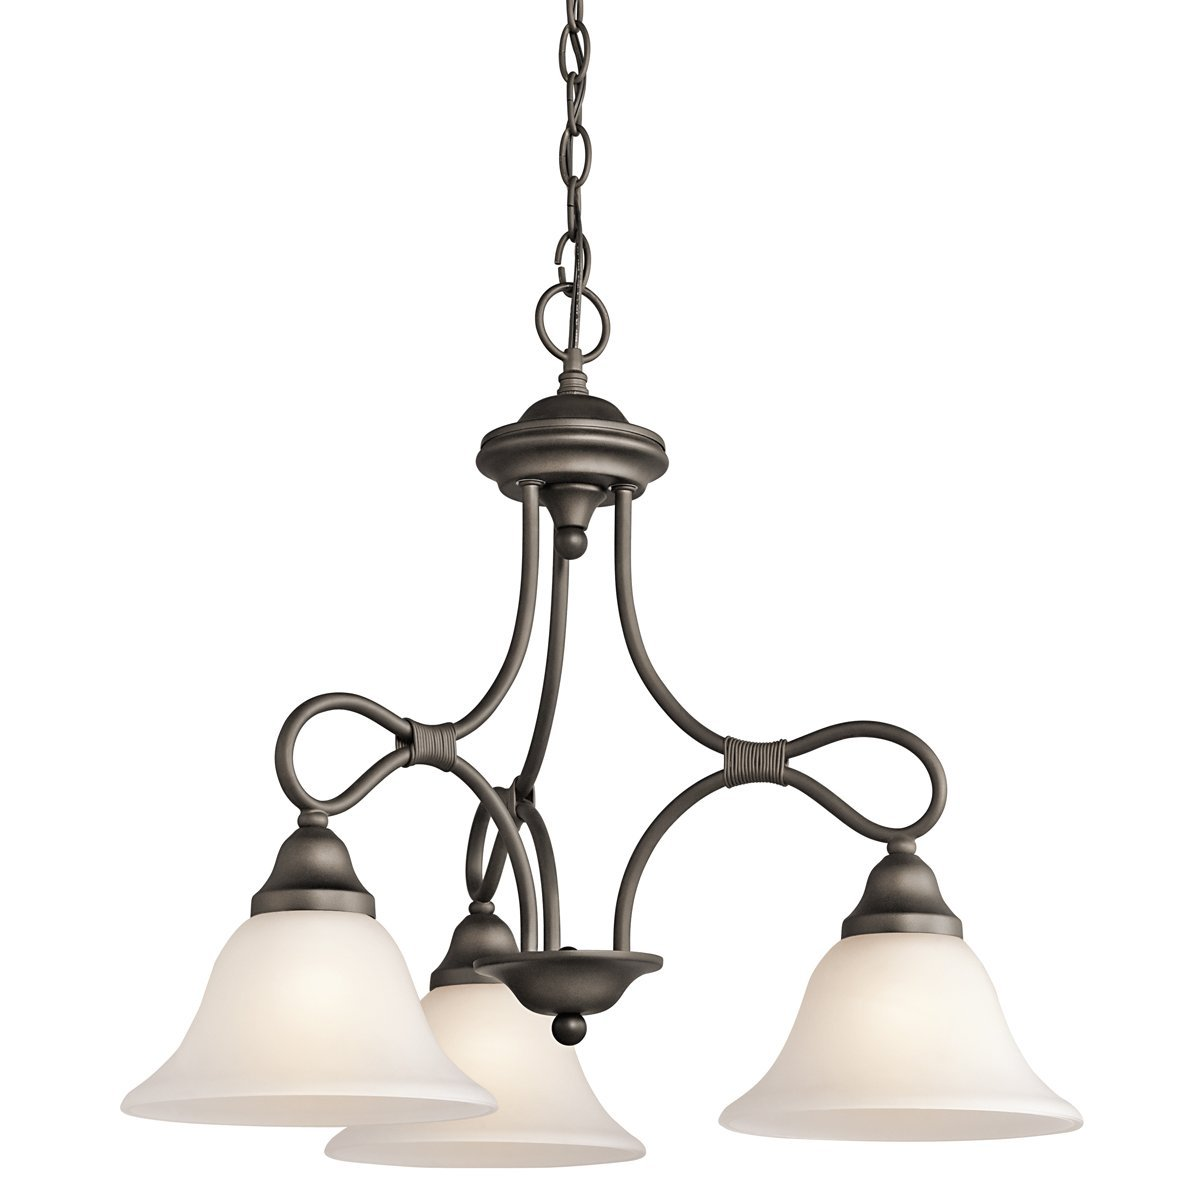 Kichler Lighting 2556OZ Stafford 3-Light Chandelier, Old Bronze Finish with Satin Etched Glass Shades